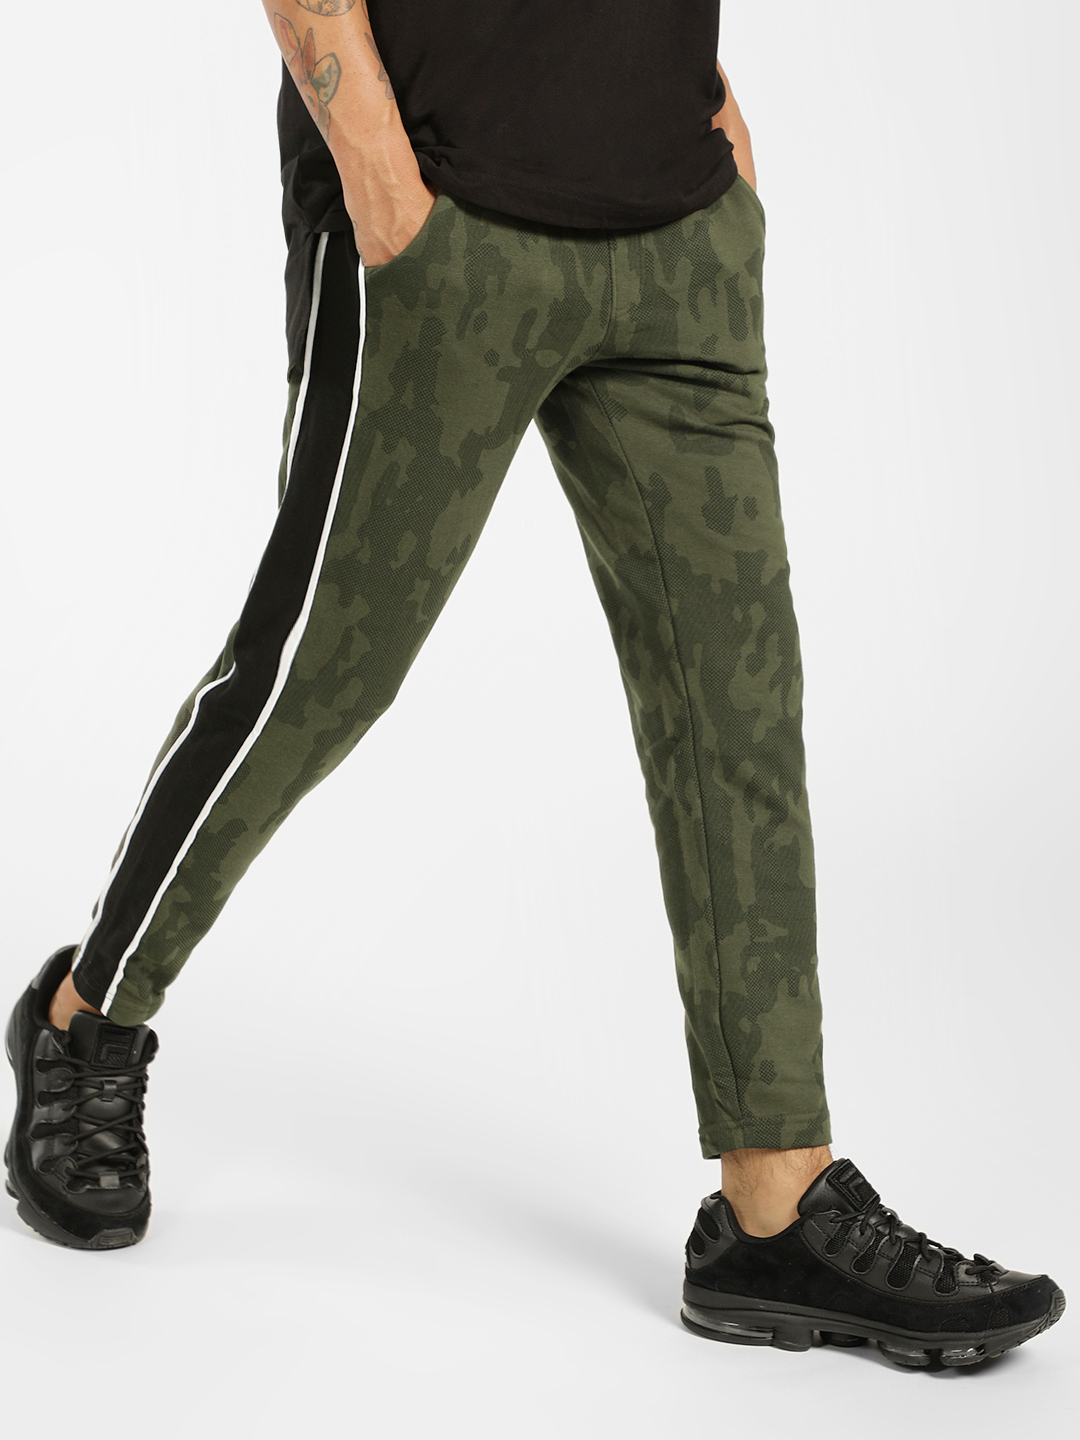 SKULT By Shahid Kapoor Olive Contrast Tape Camo Print Joggers 1